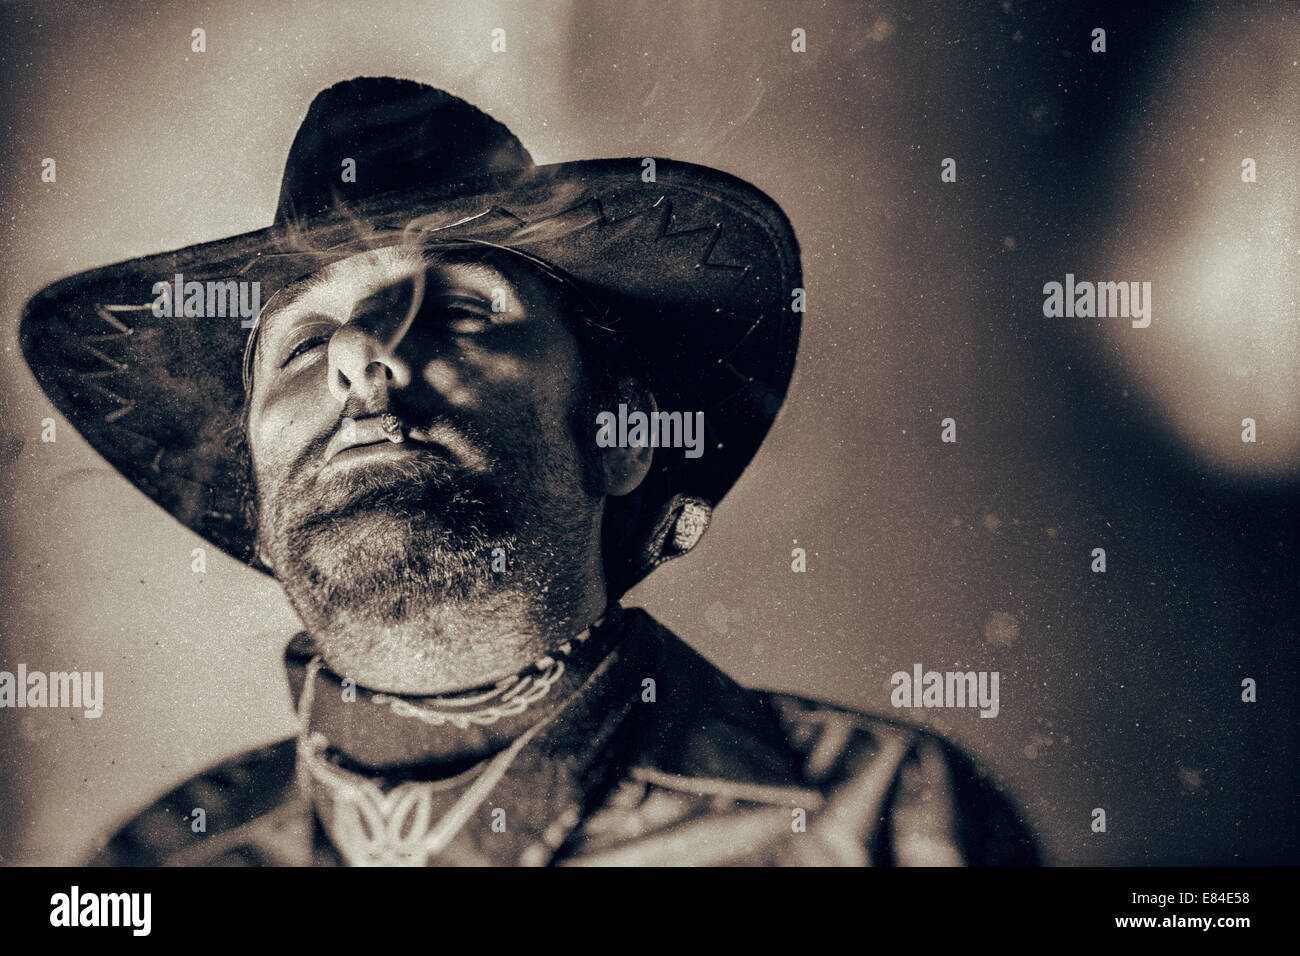 0d4a6a2203c Old West Outlaw Stock Photos   Old West Outlaw Stock Images - Alamy